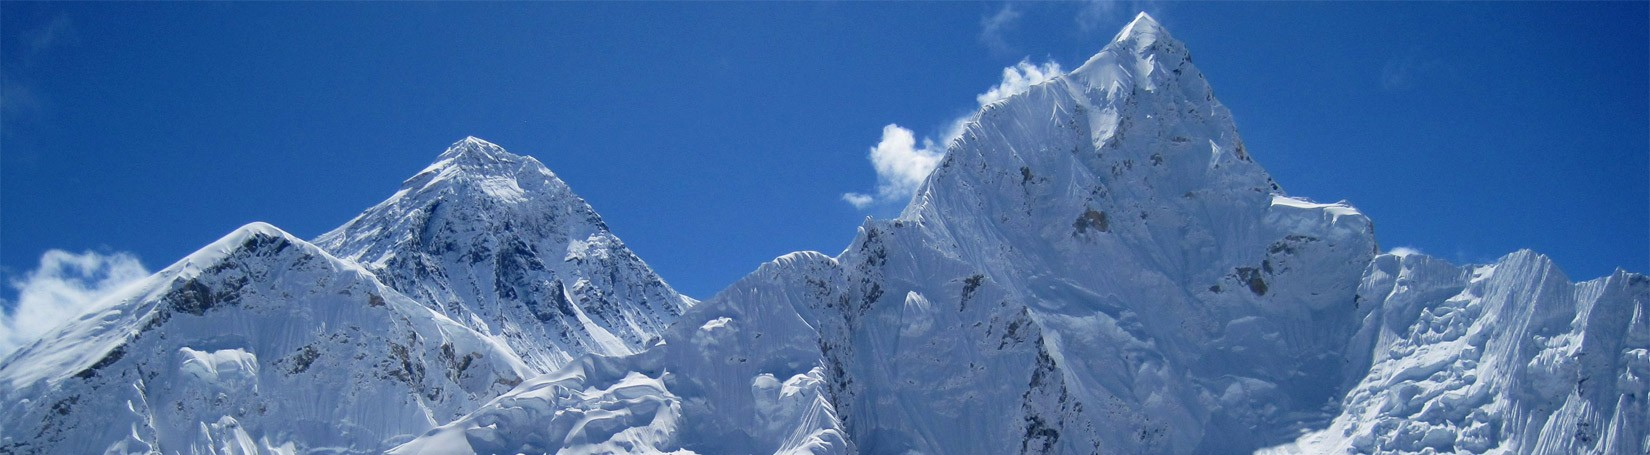 Mount Everest View in Winter season